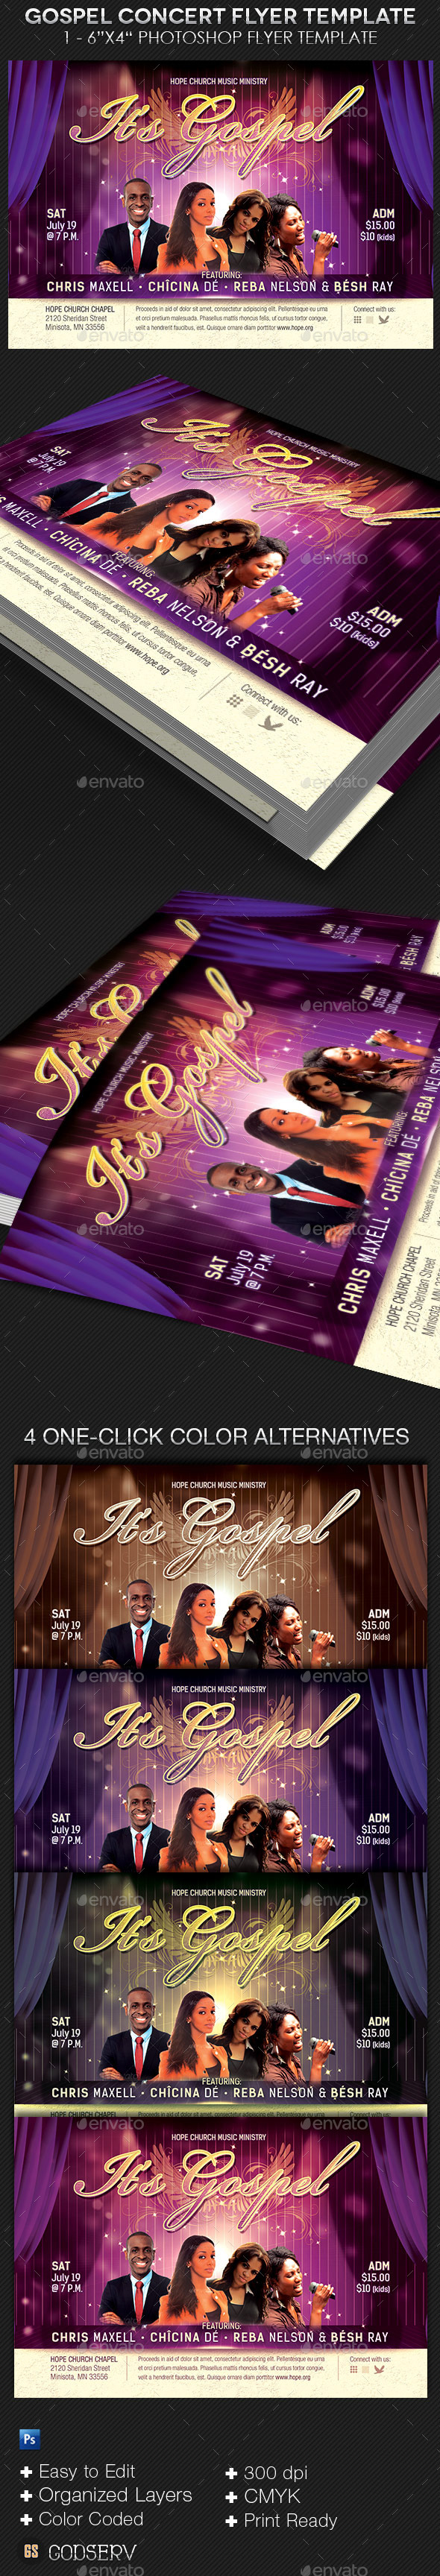 Gospel Concert Church Flyer Template - Church Flyers